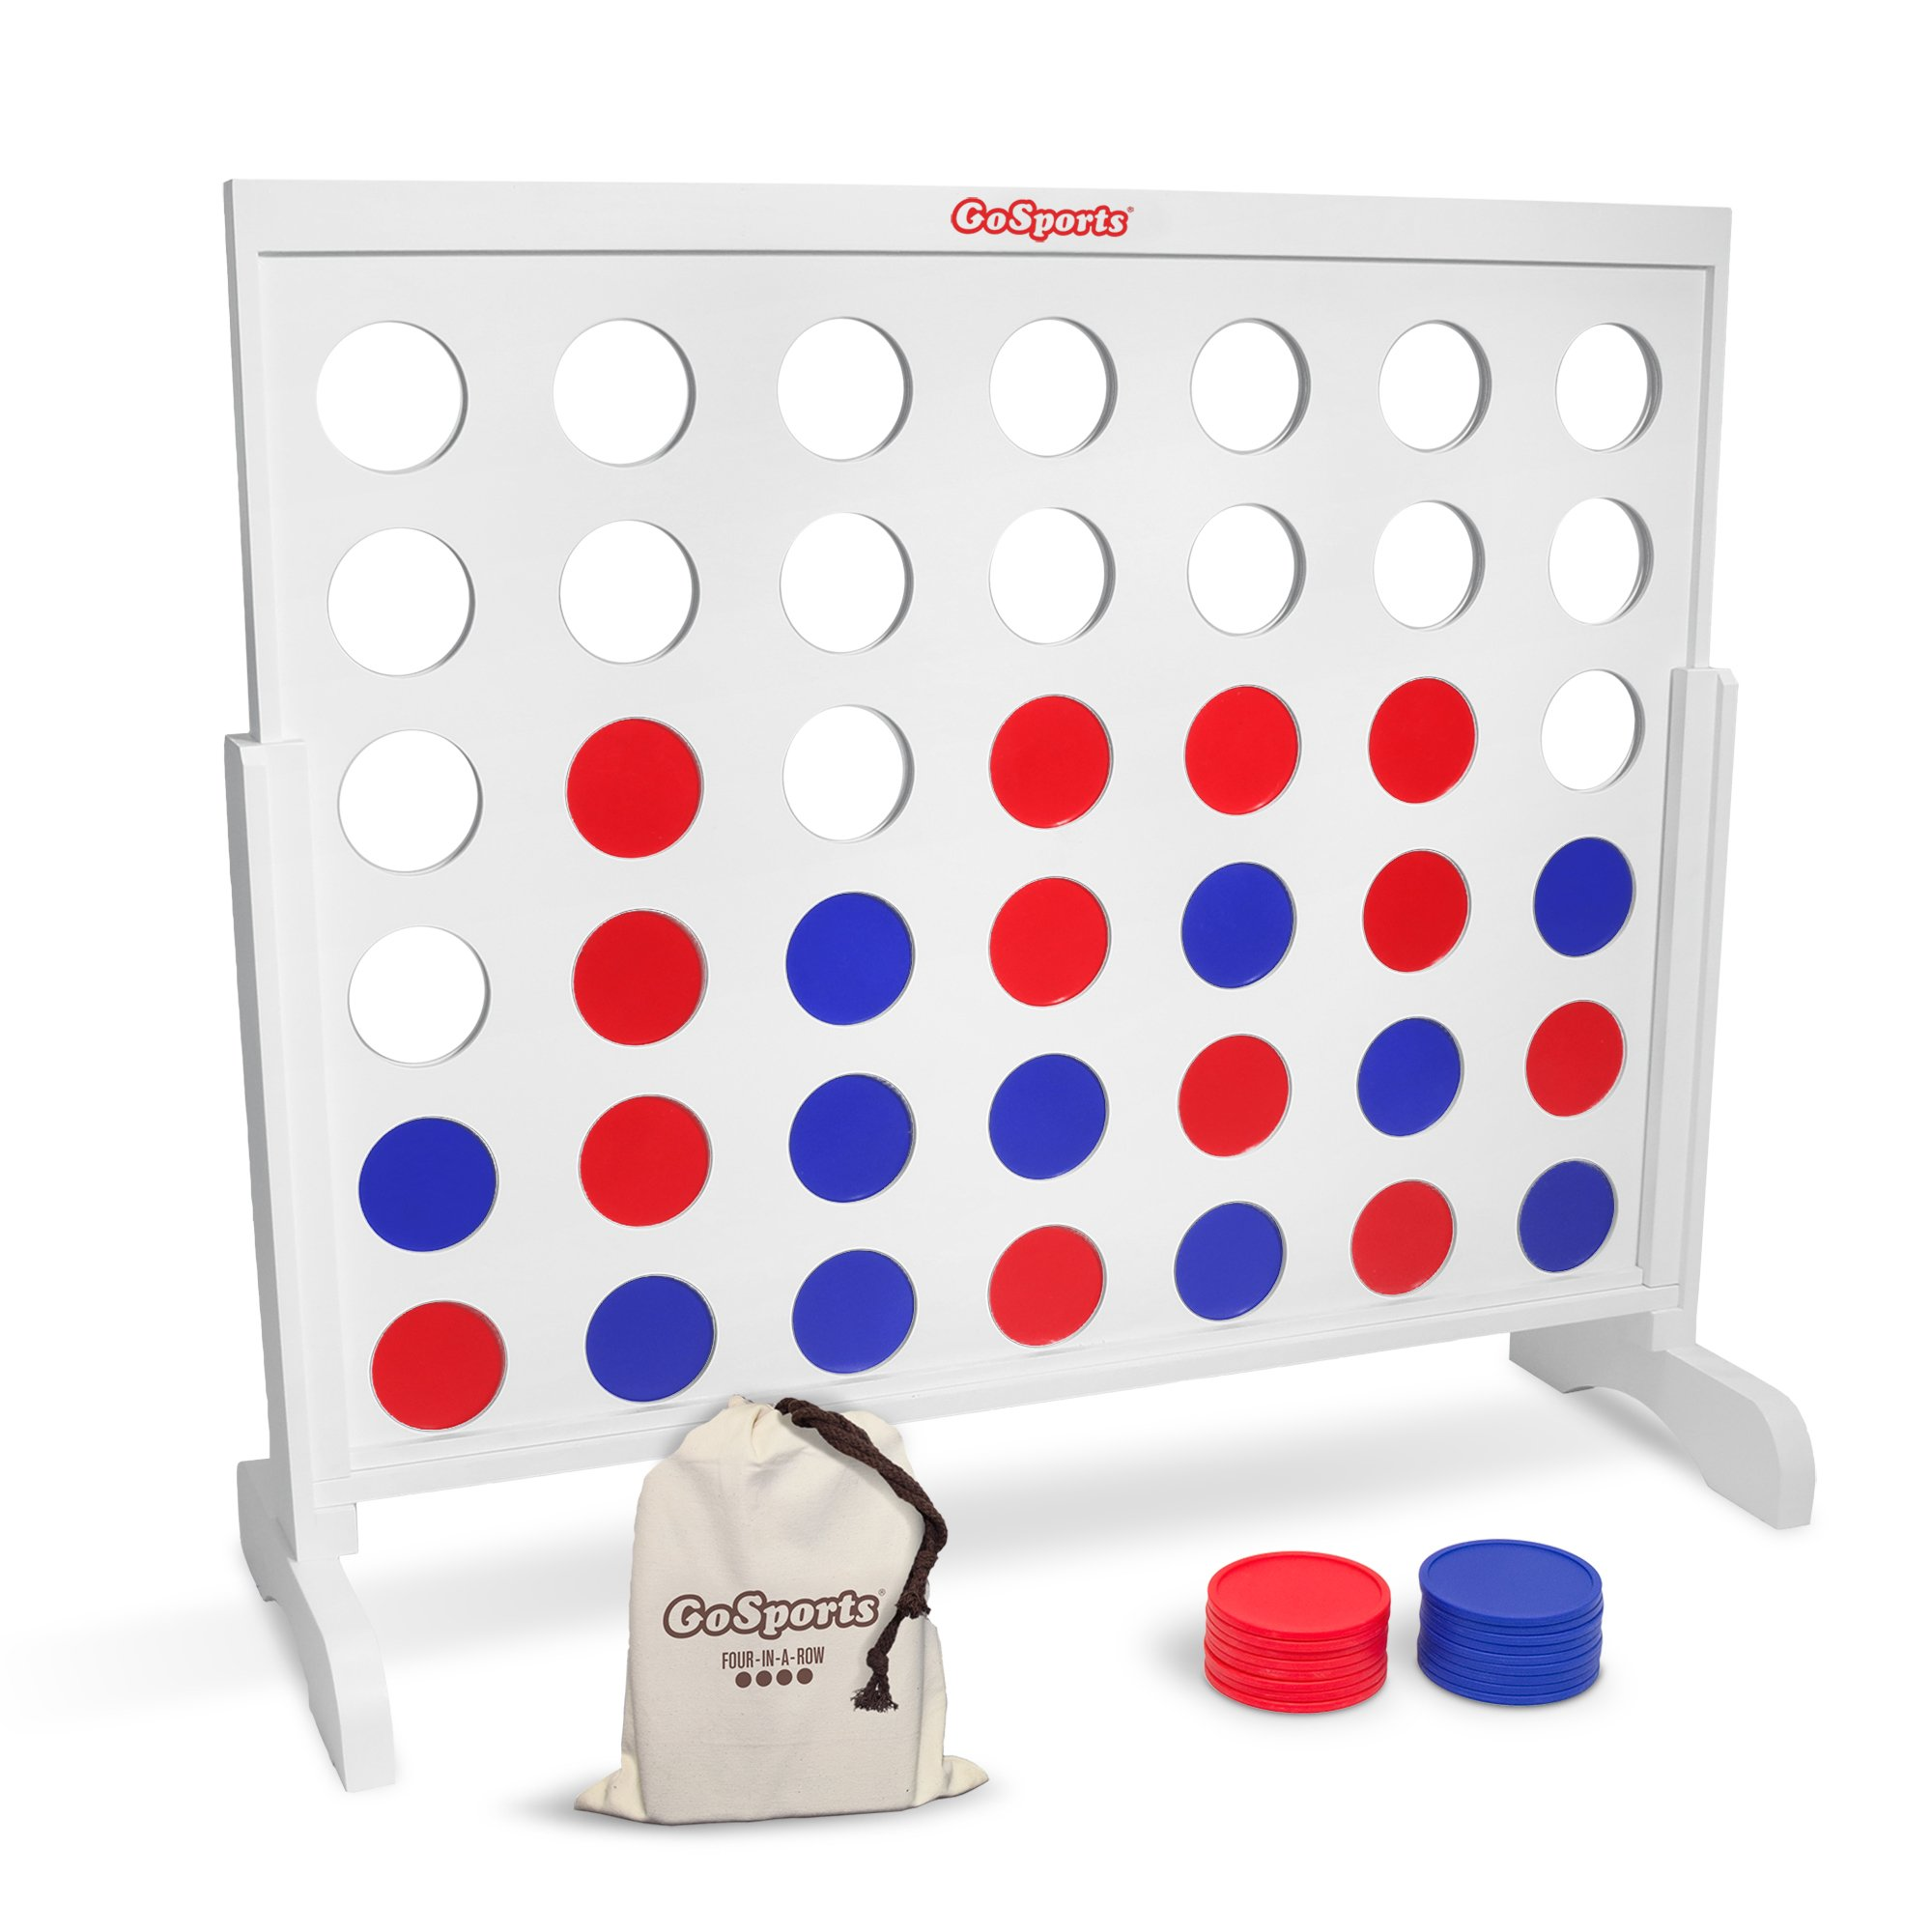 GoSports Giant 4 in a Row Game - HUGE 4 Foot Width - with Tote Bag for Coins